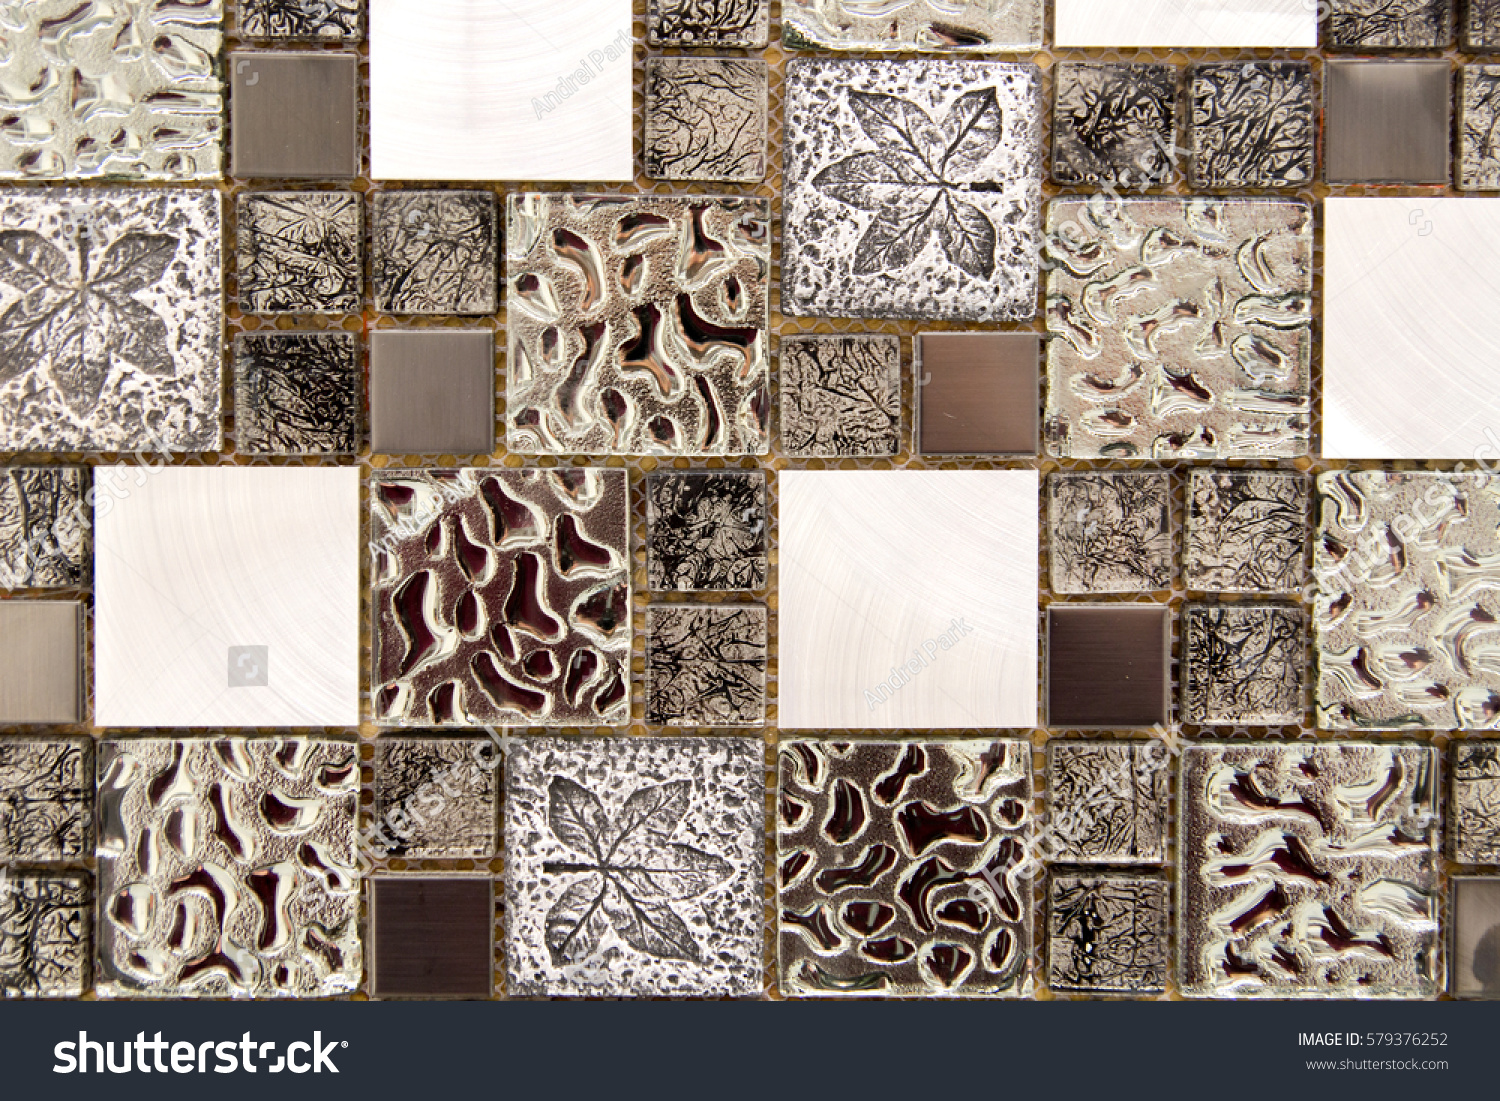 Ceramic decorative tiles different textures covering stock photo ceramic decorative tiles of different textures covering walls and floor in kitchen bathroom or toilet amipublicfo Image collections